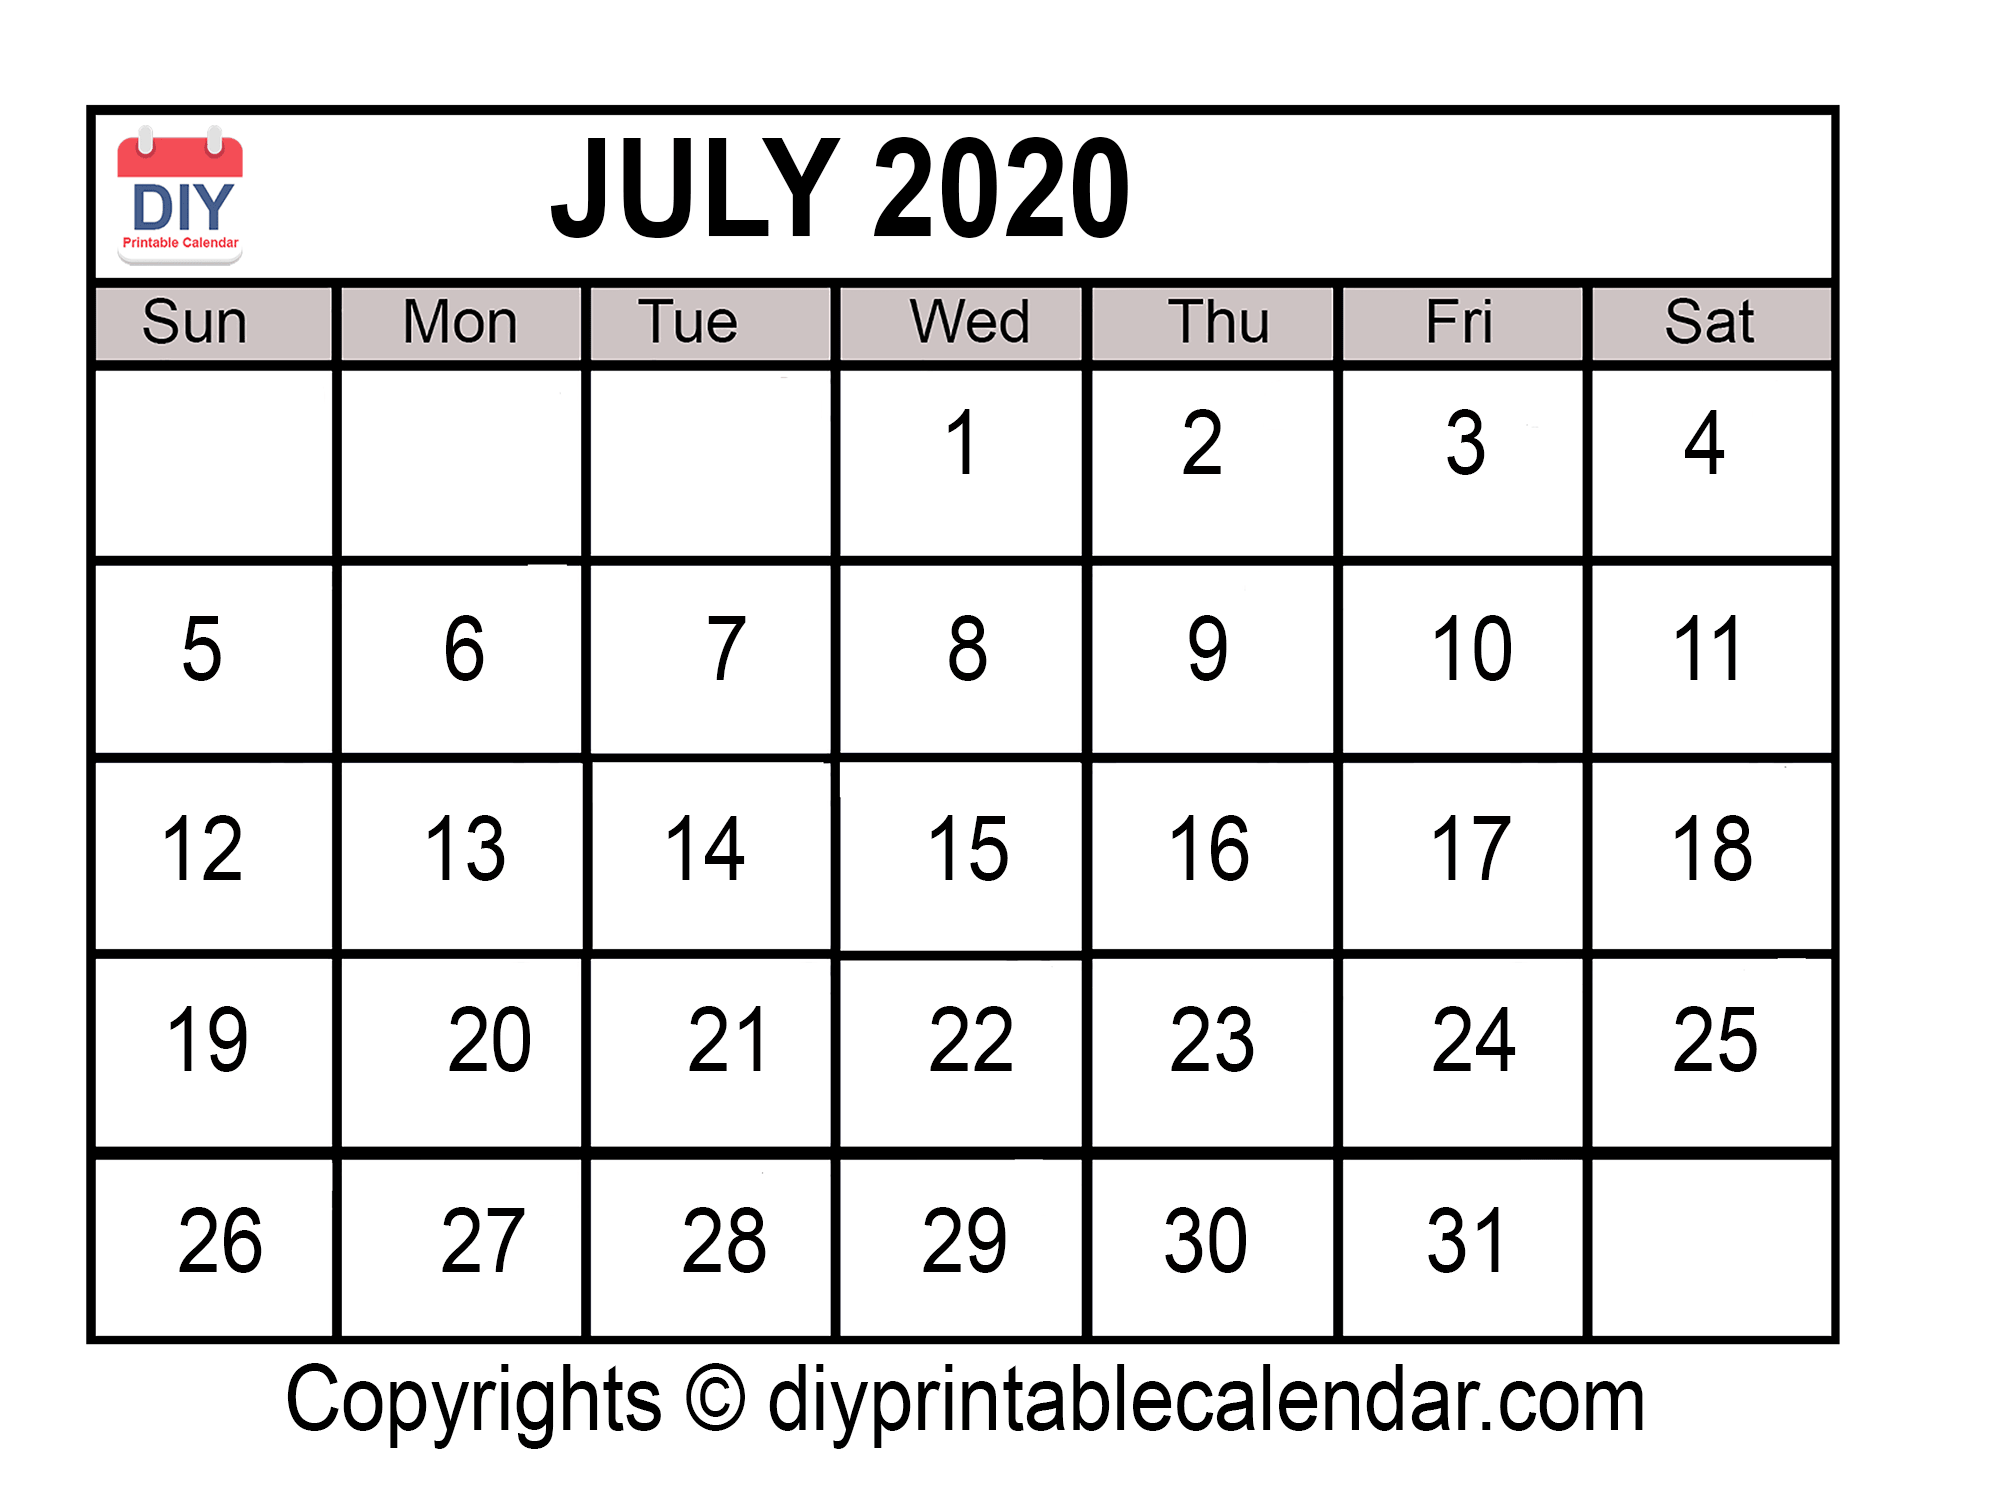 Download July 2020 Printable Calendar